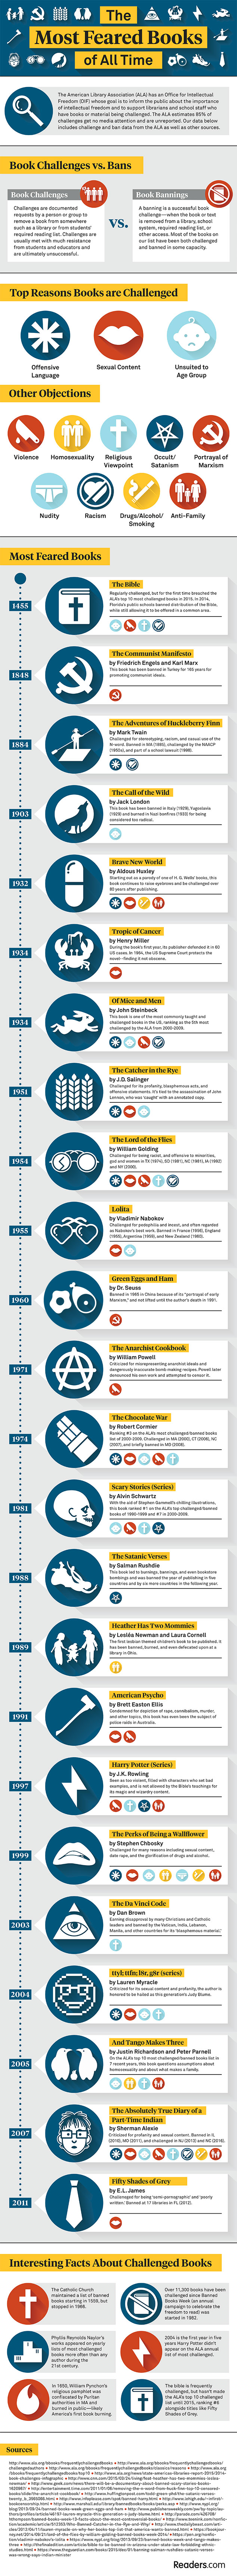 The Most Feared Books Of All Time Infographic - Forget Ghosts and Clowns; These Books Have Caused More Fear!